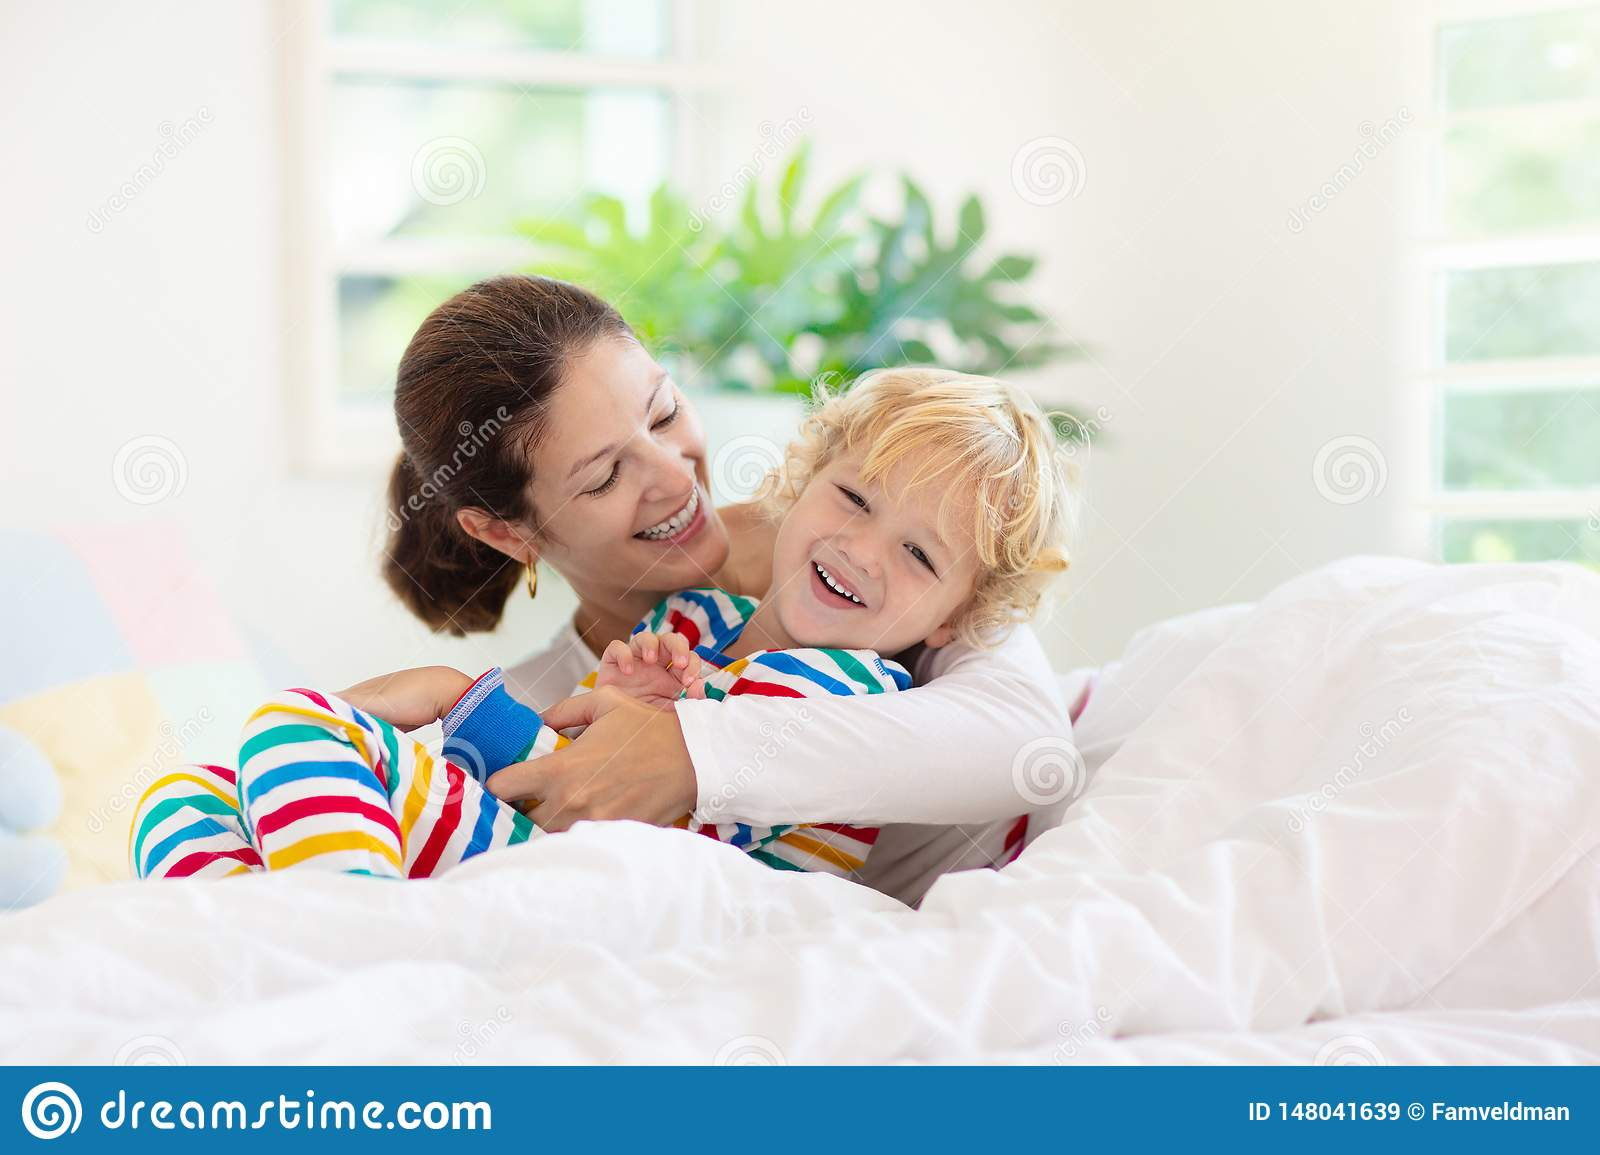 Mother and child in bed. Mom and baby at home